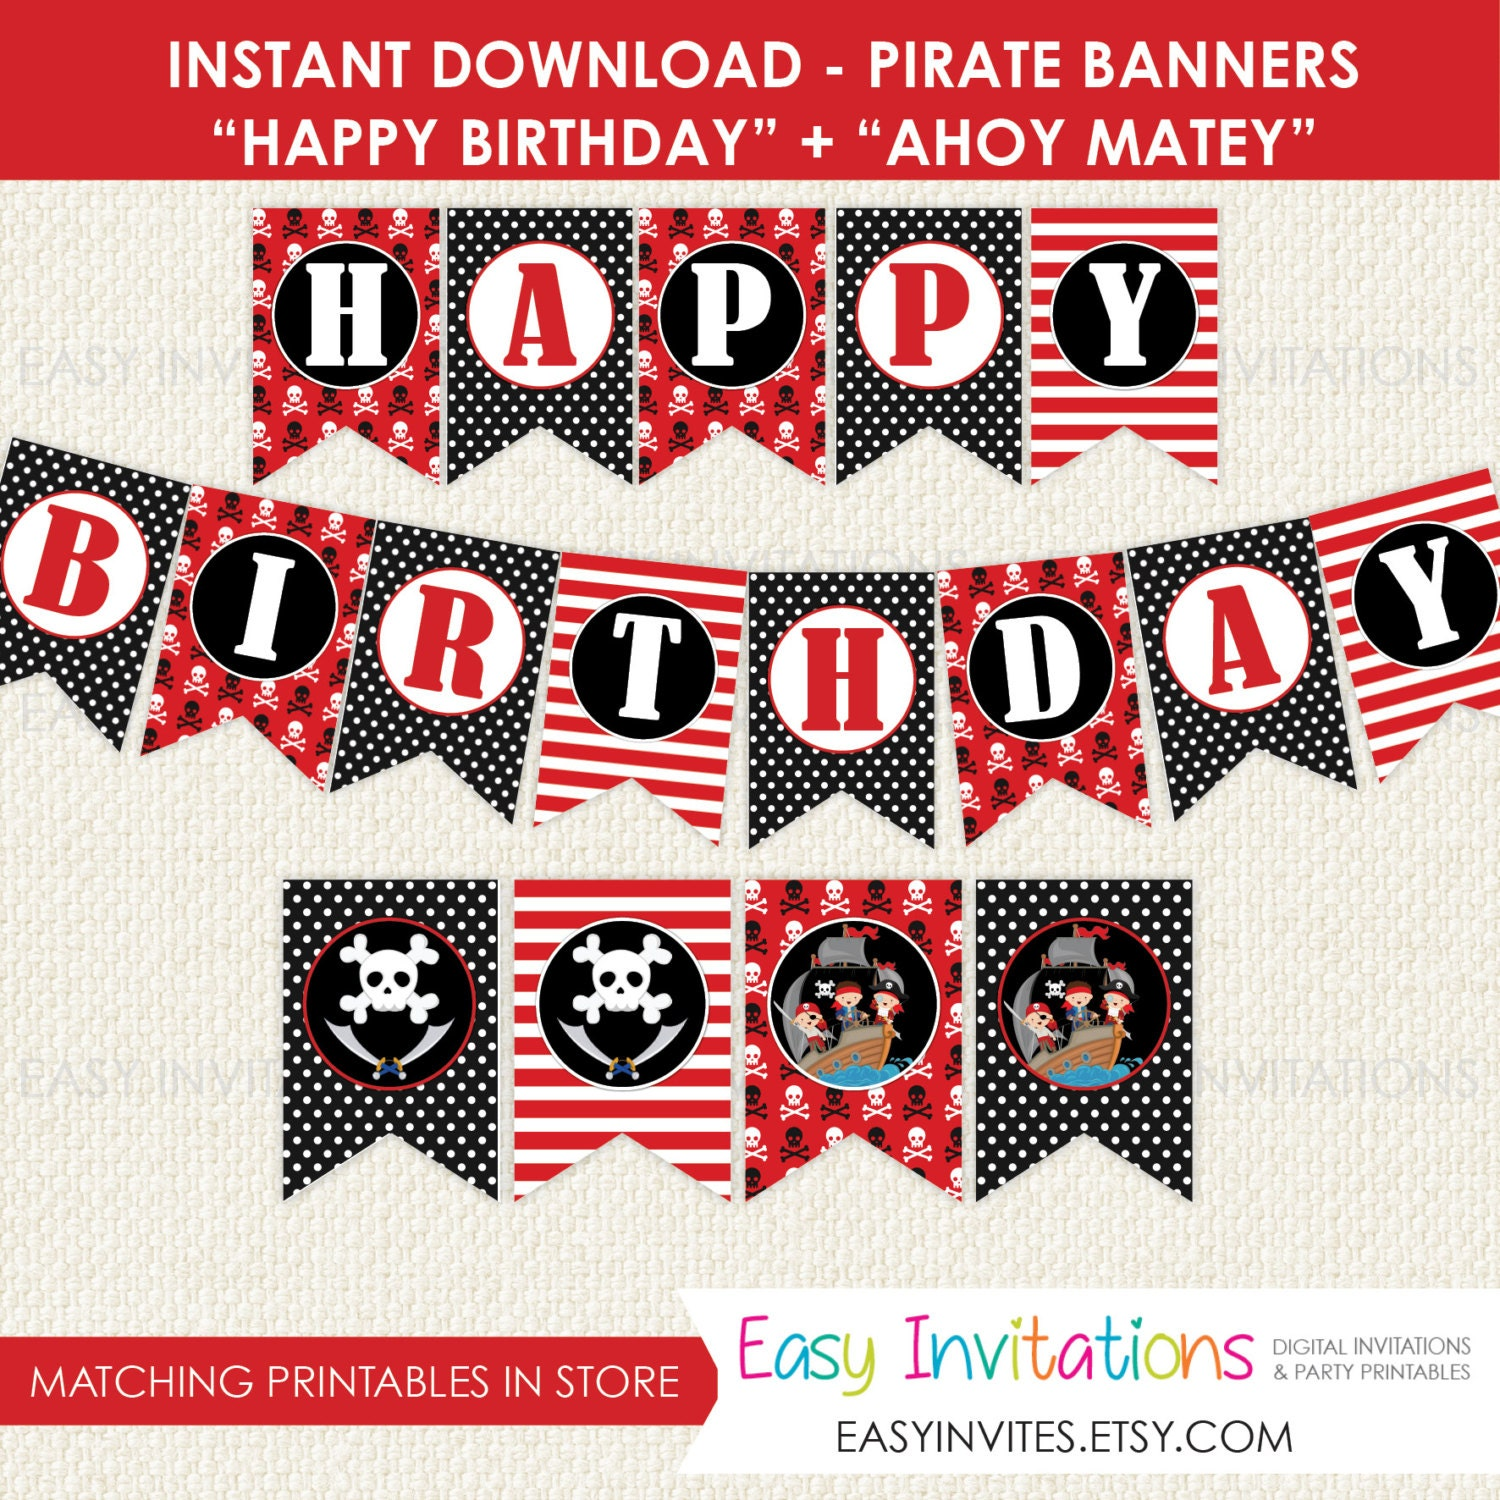 Awesome Pirate Party Invitations Picture Collection - Invitations ...